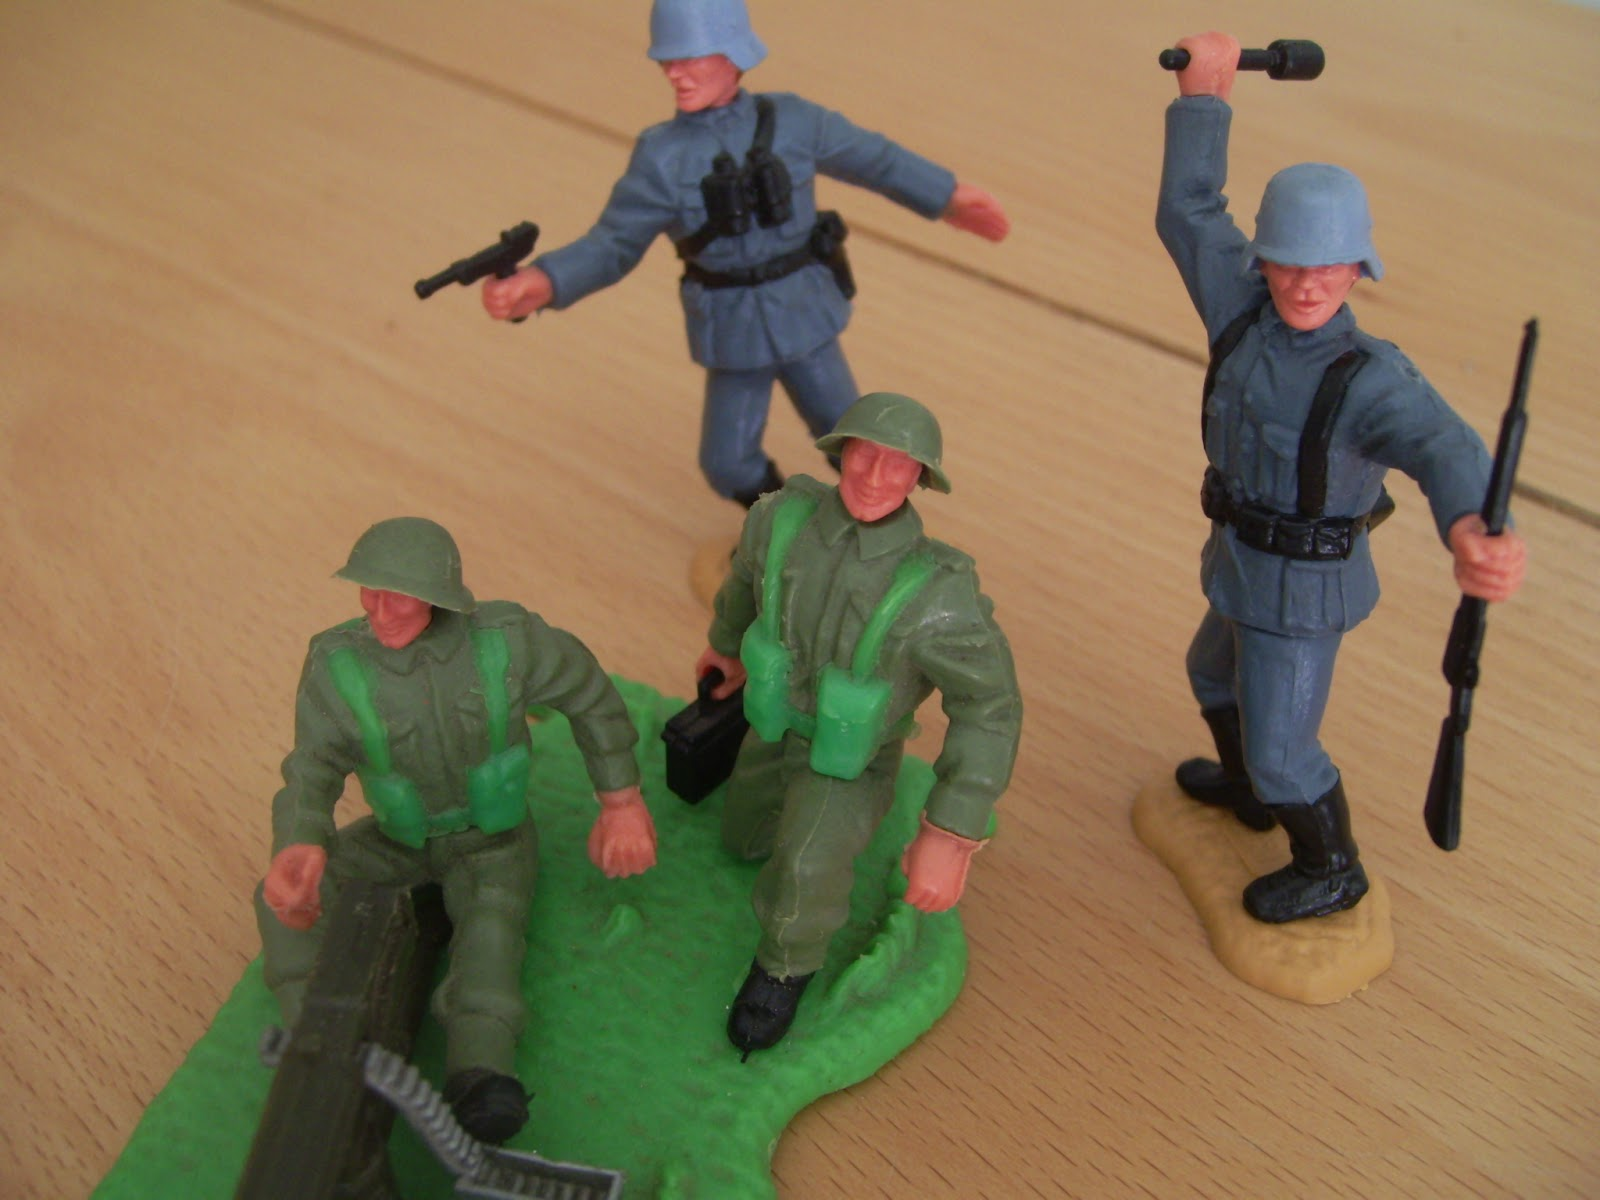 RAMM HOBBY: Timpo Toys Soldiers from WW2